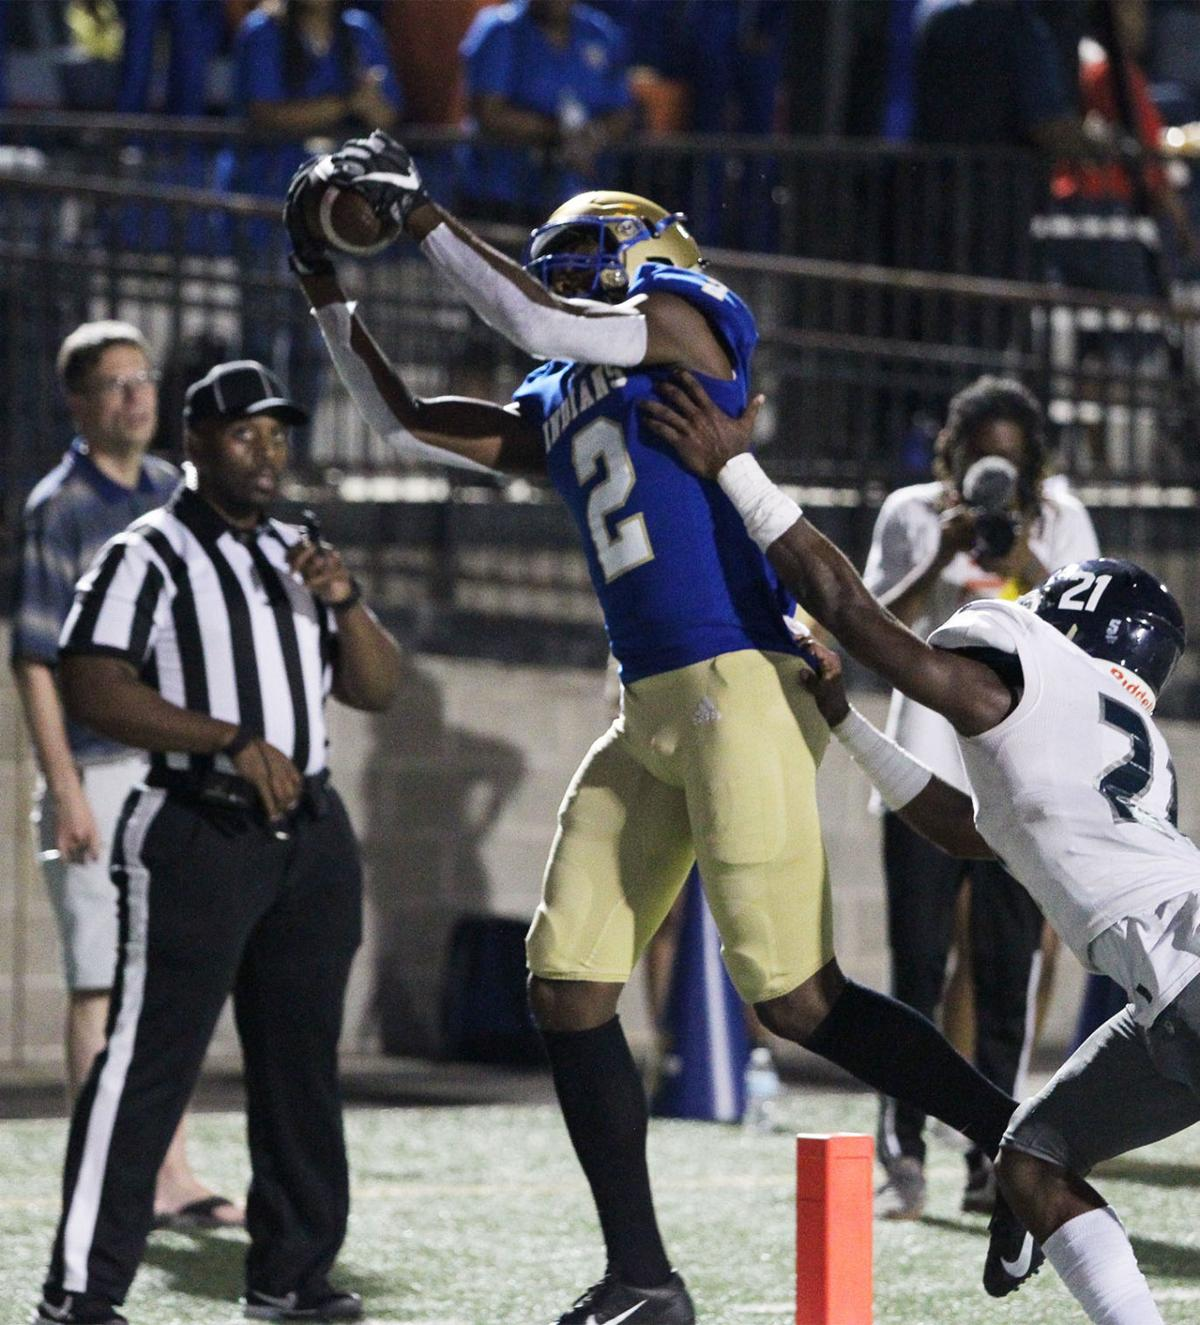 Cedar Grove at McEachern 2.jpg